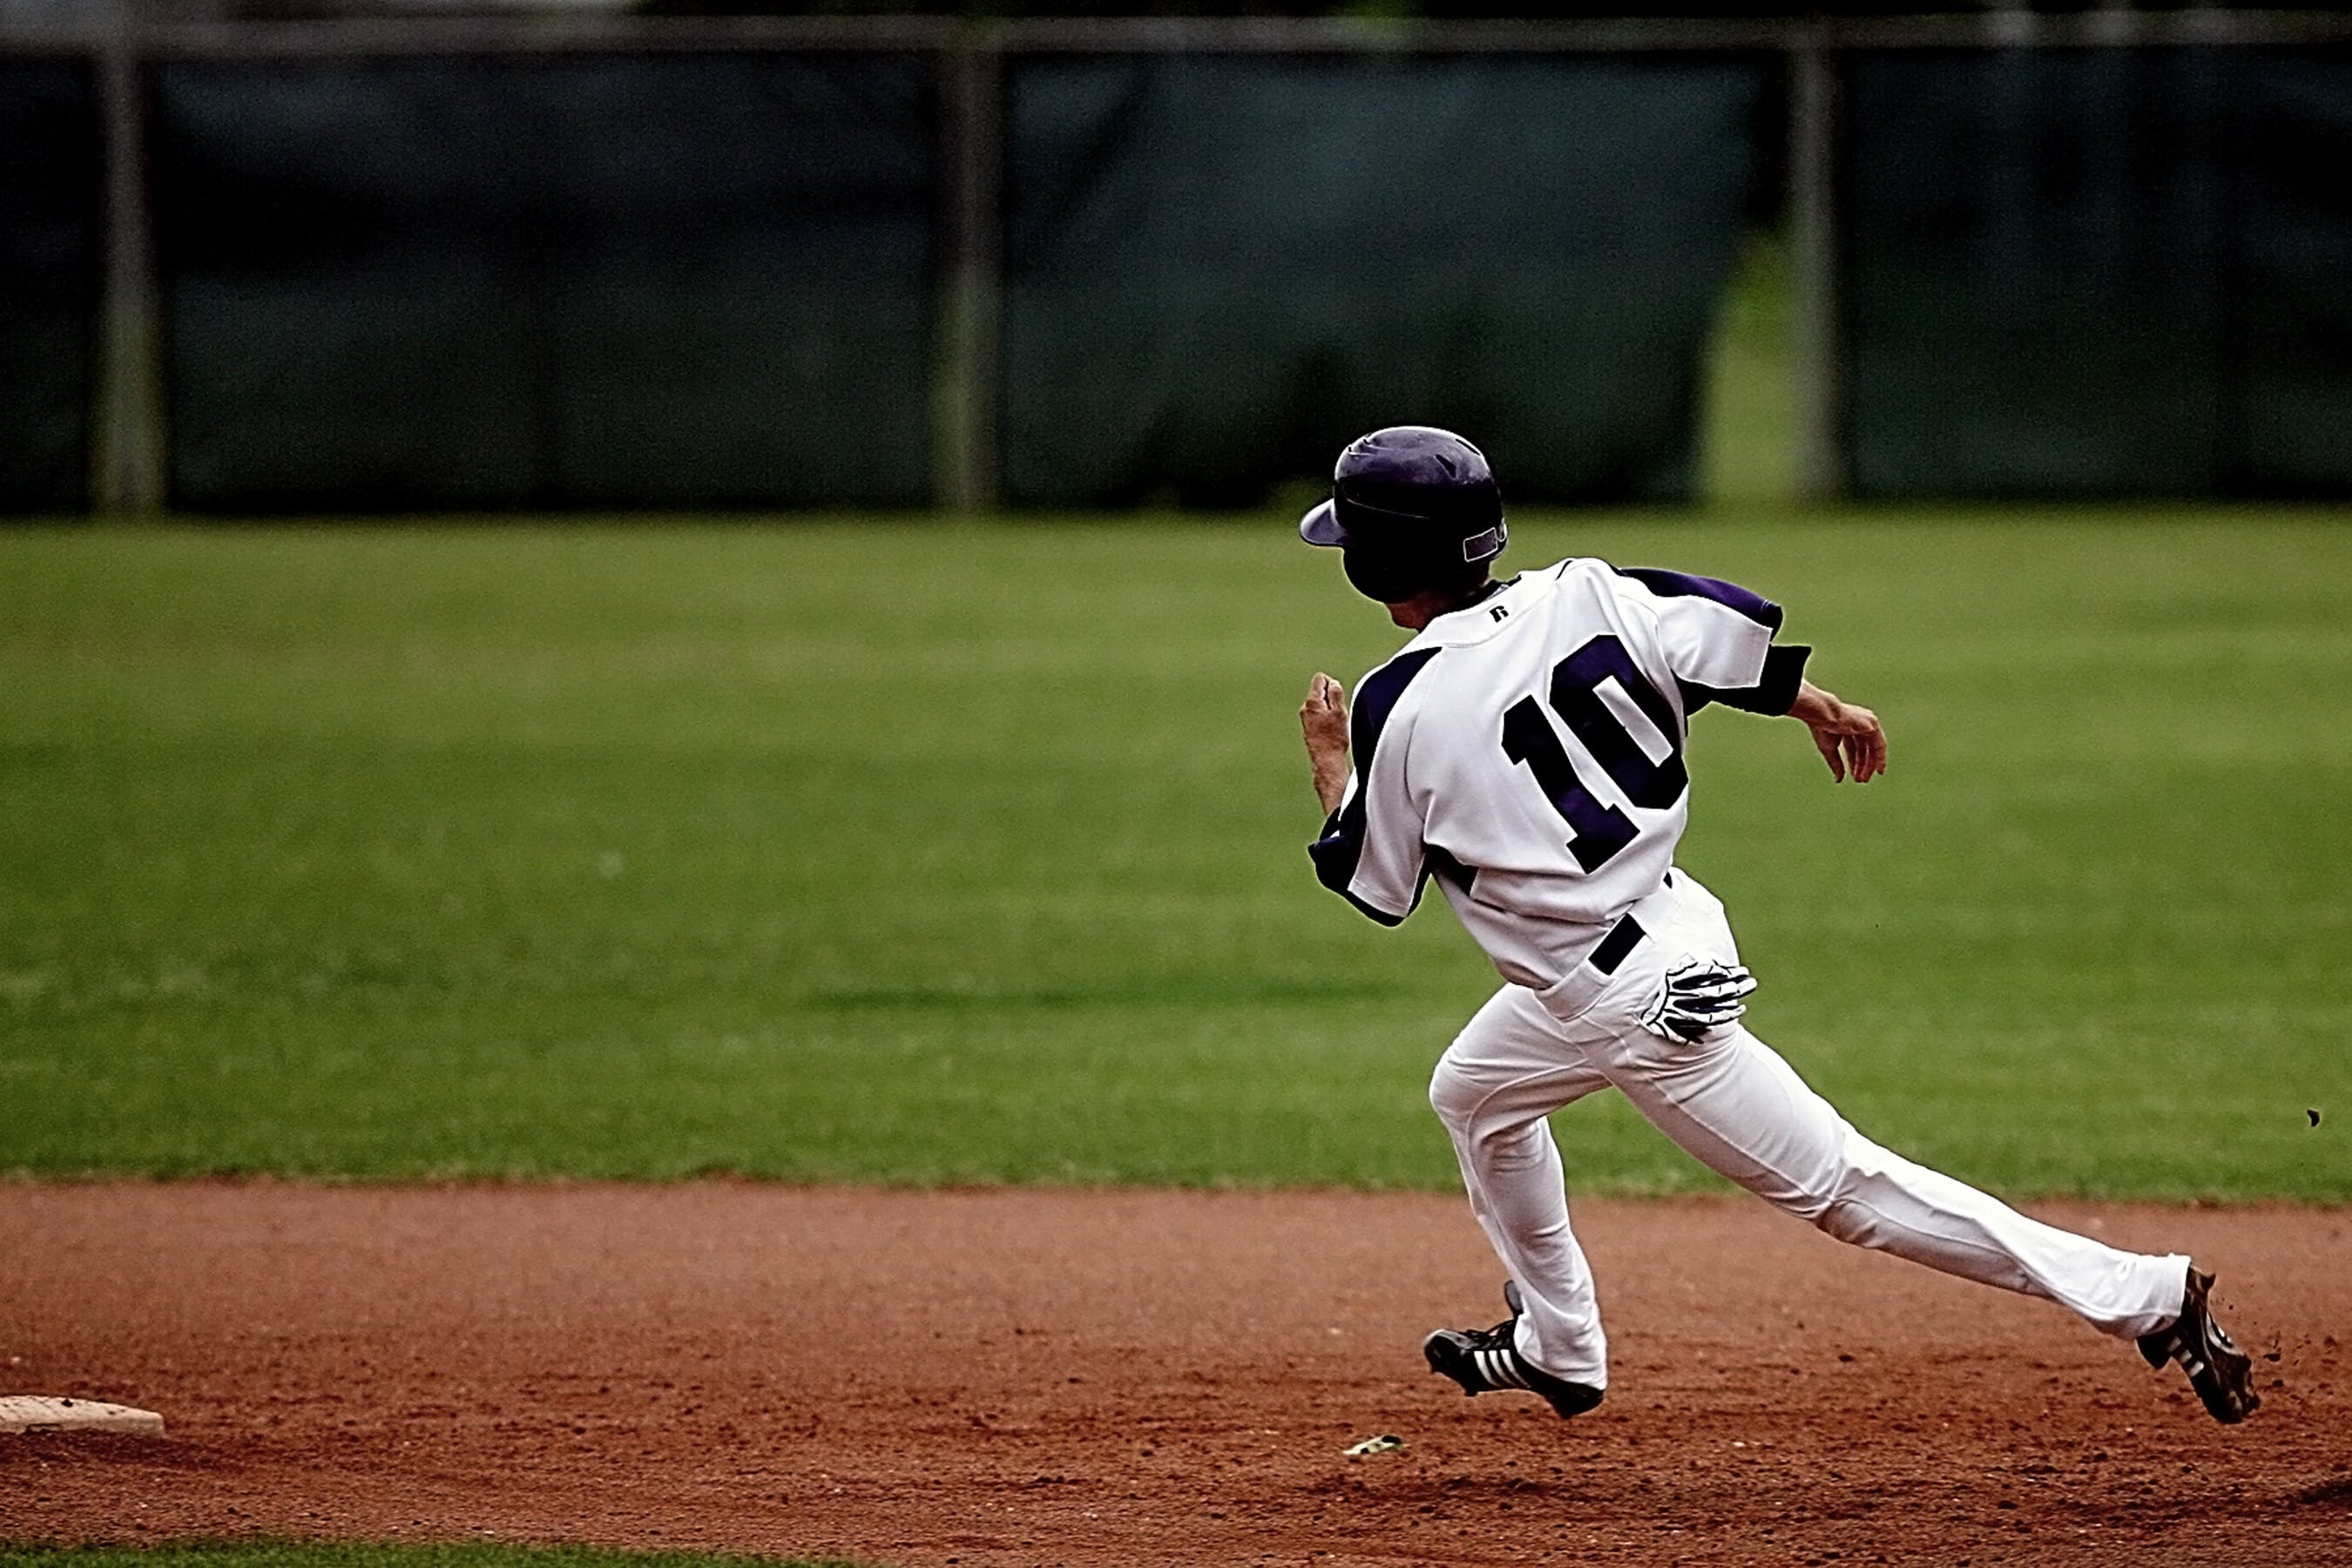 Baseball Player Running on Court